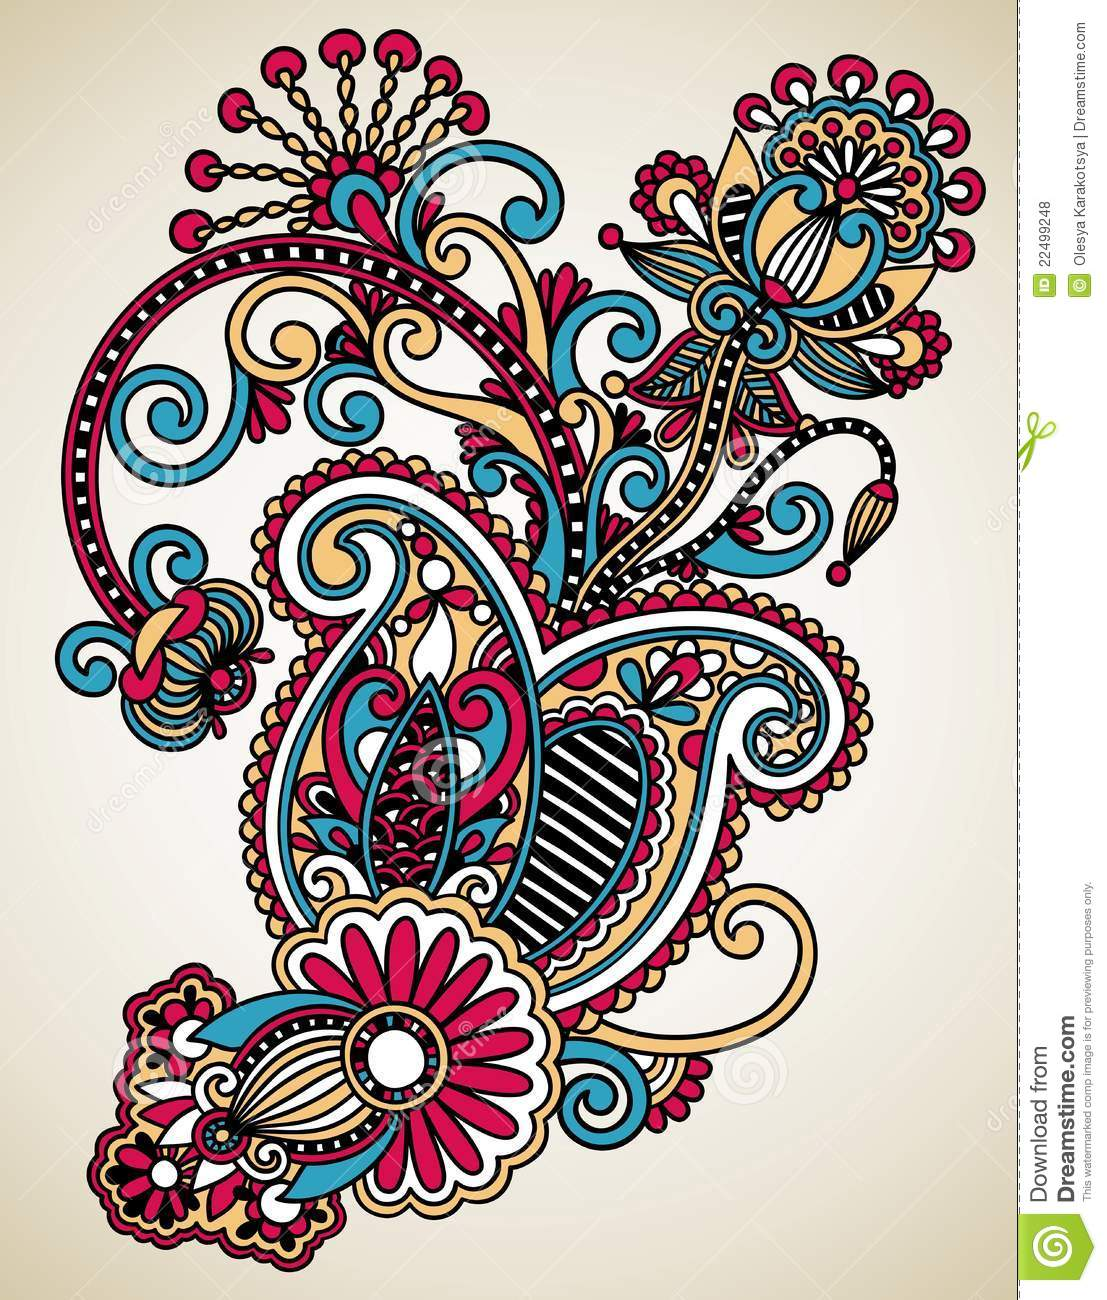 Line Drawing Flower Designs : Line art ornate flower design stock illustration